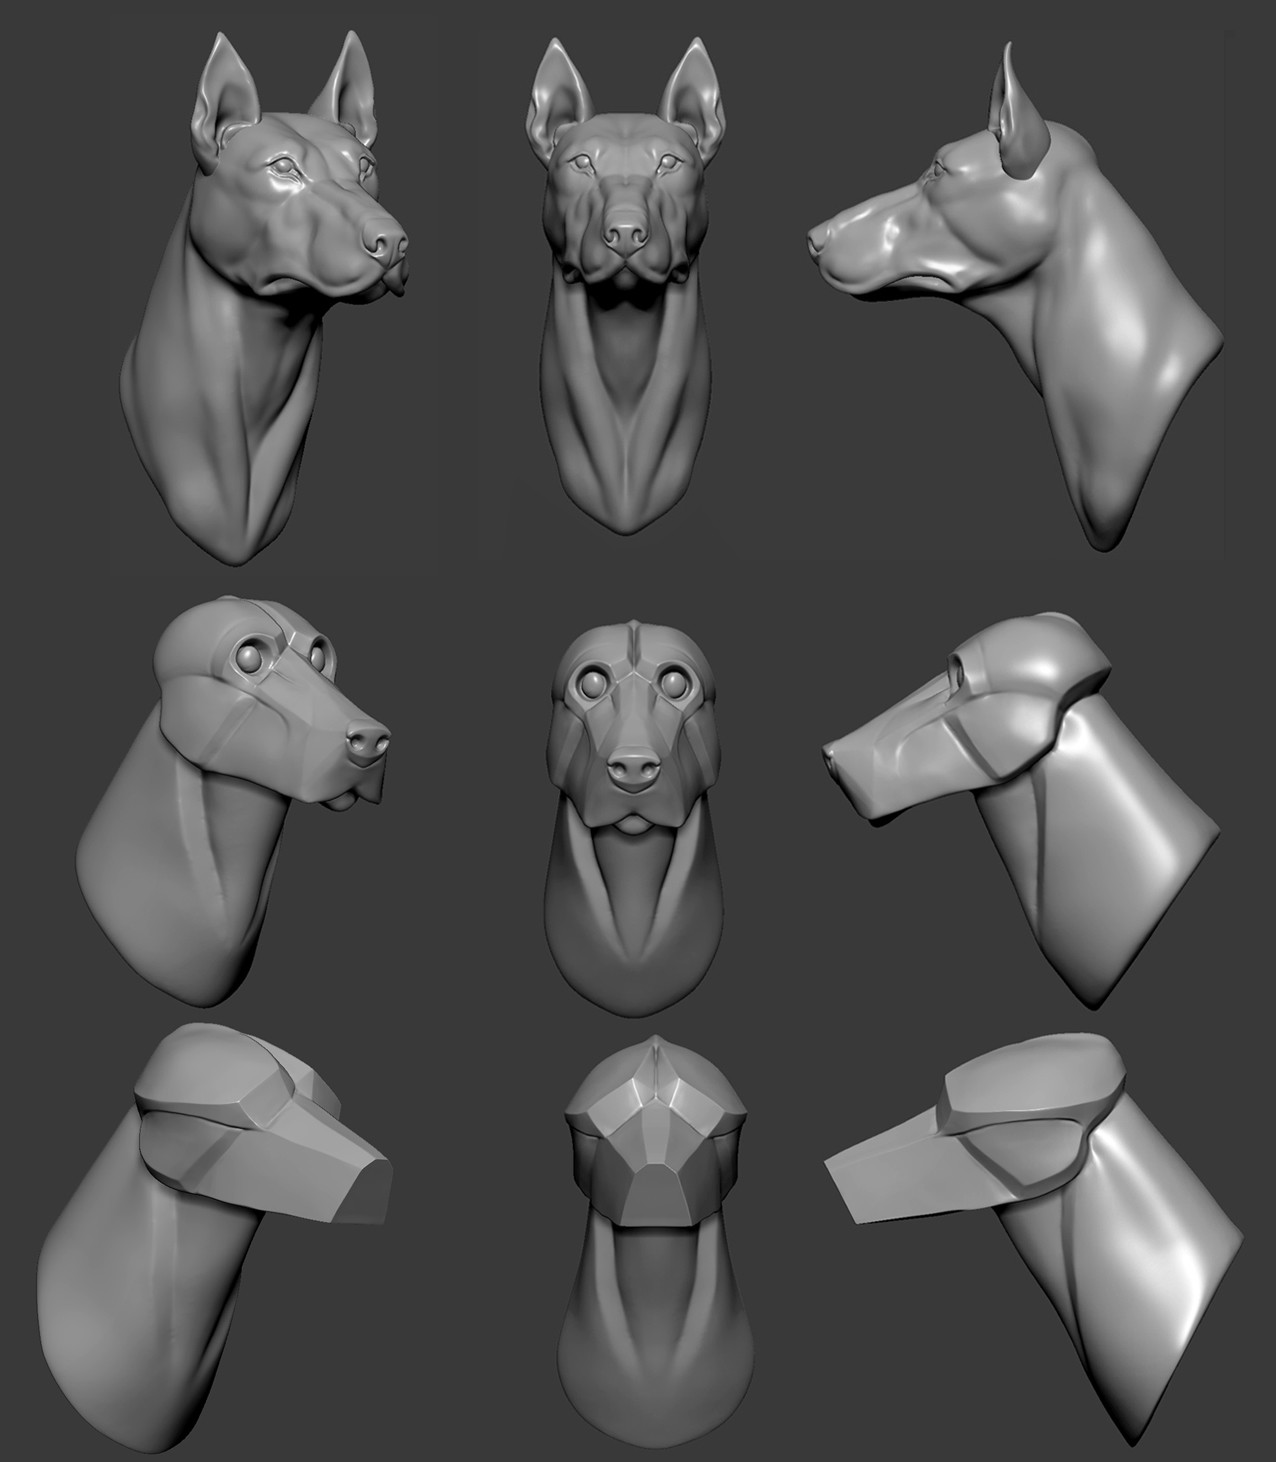 ArtStation - Animal/Creature anatomy studies, Oscar Loris